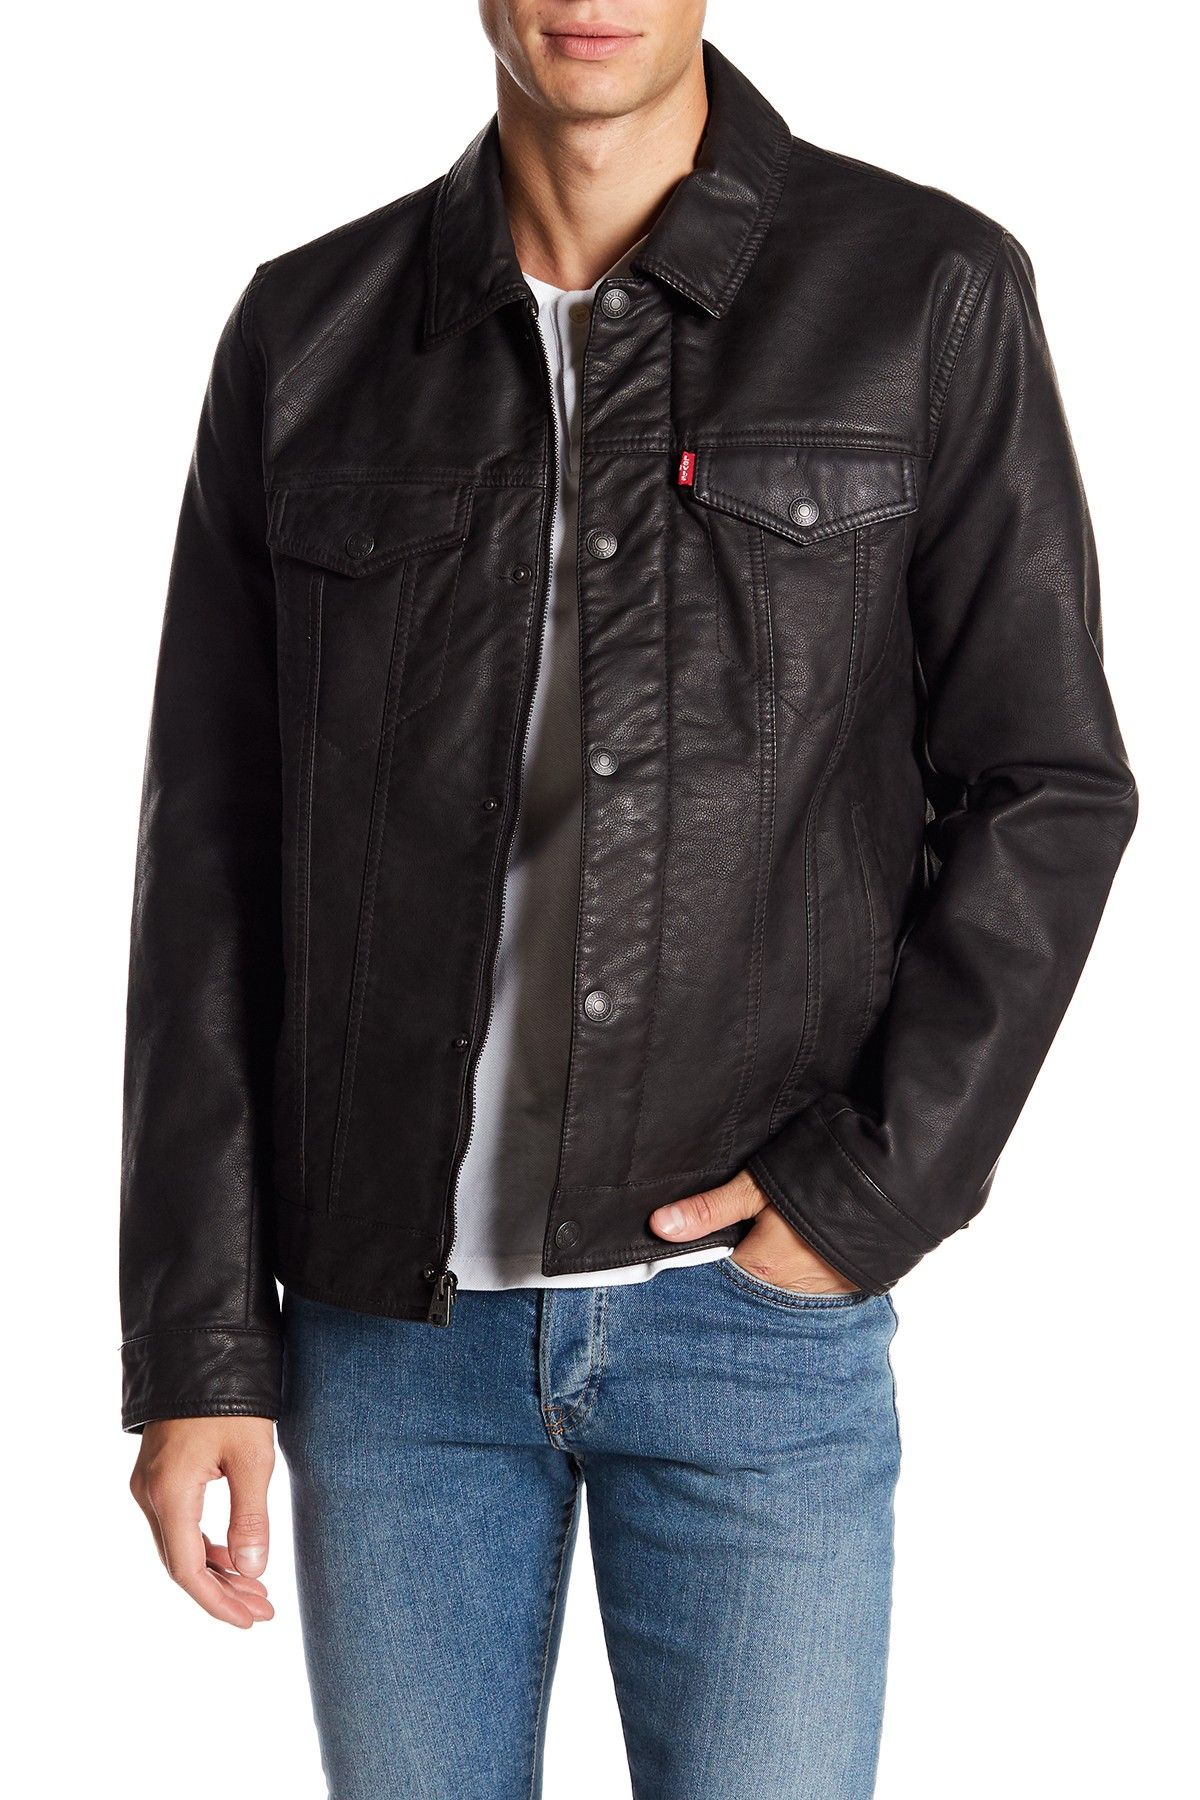 Levi's Classic Faux Leather Trucker Jacket in 2020